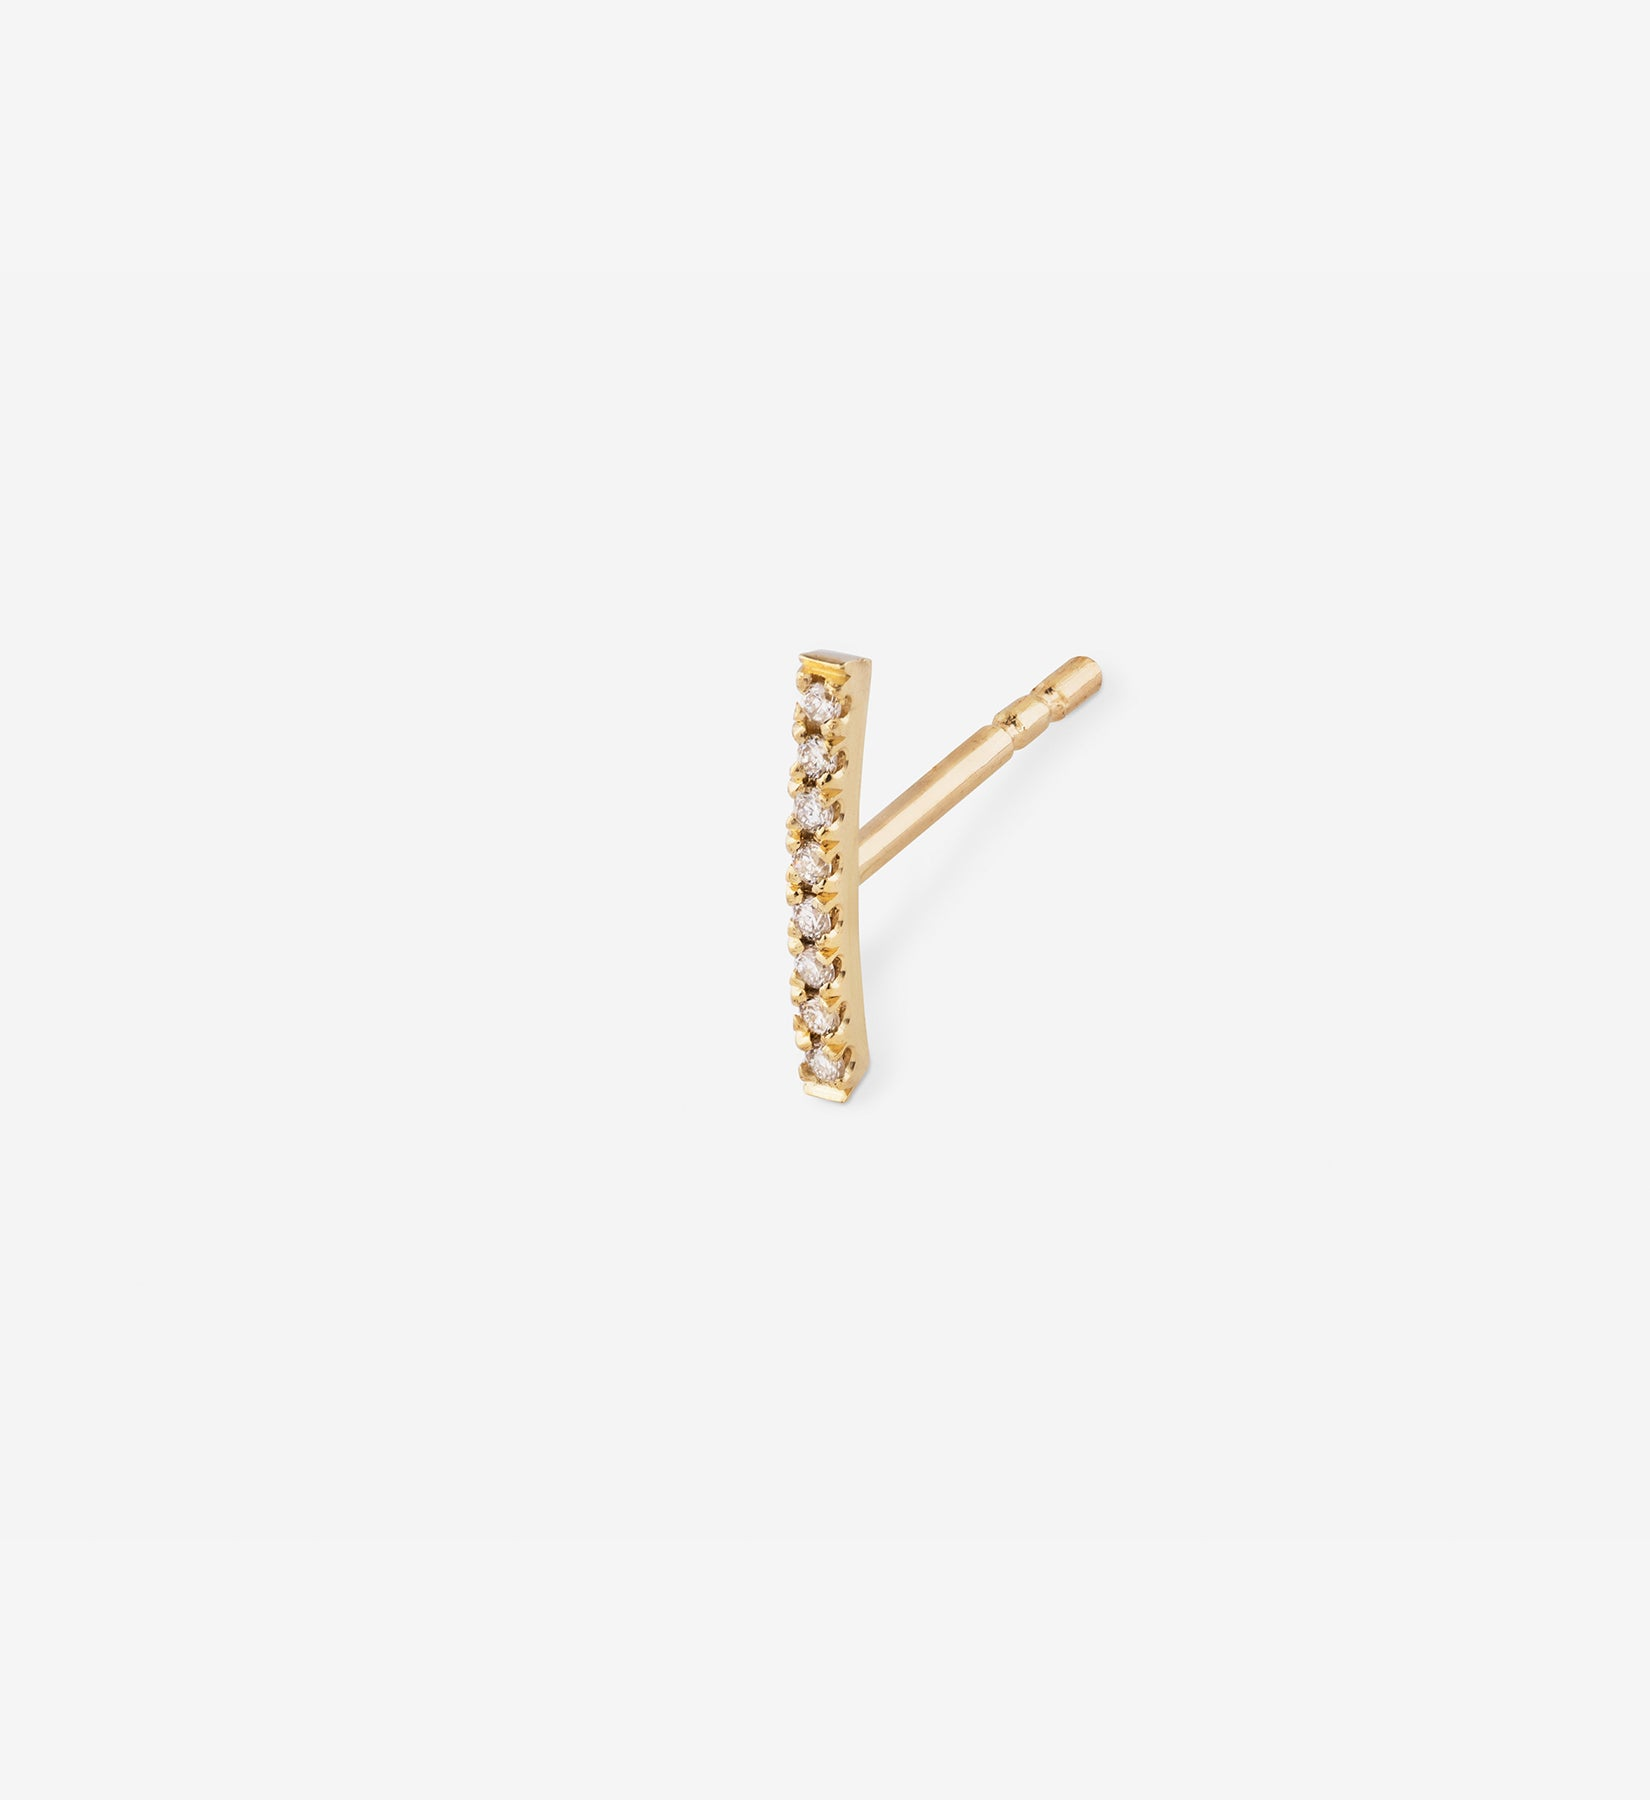 OUVERTURE, Fine jewelry, 14K gold, diamonds, golden ring, diamond ring, golden earring, diamond earring. Handcrafted jewelry. Designed in Berlin. Honestly priced. Demifine. Earparty. Stacking rings. Diamond Huggie, Huggie earring, golden huggie earring diamond line earring